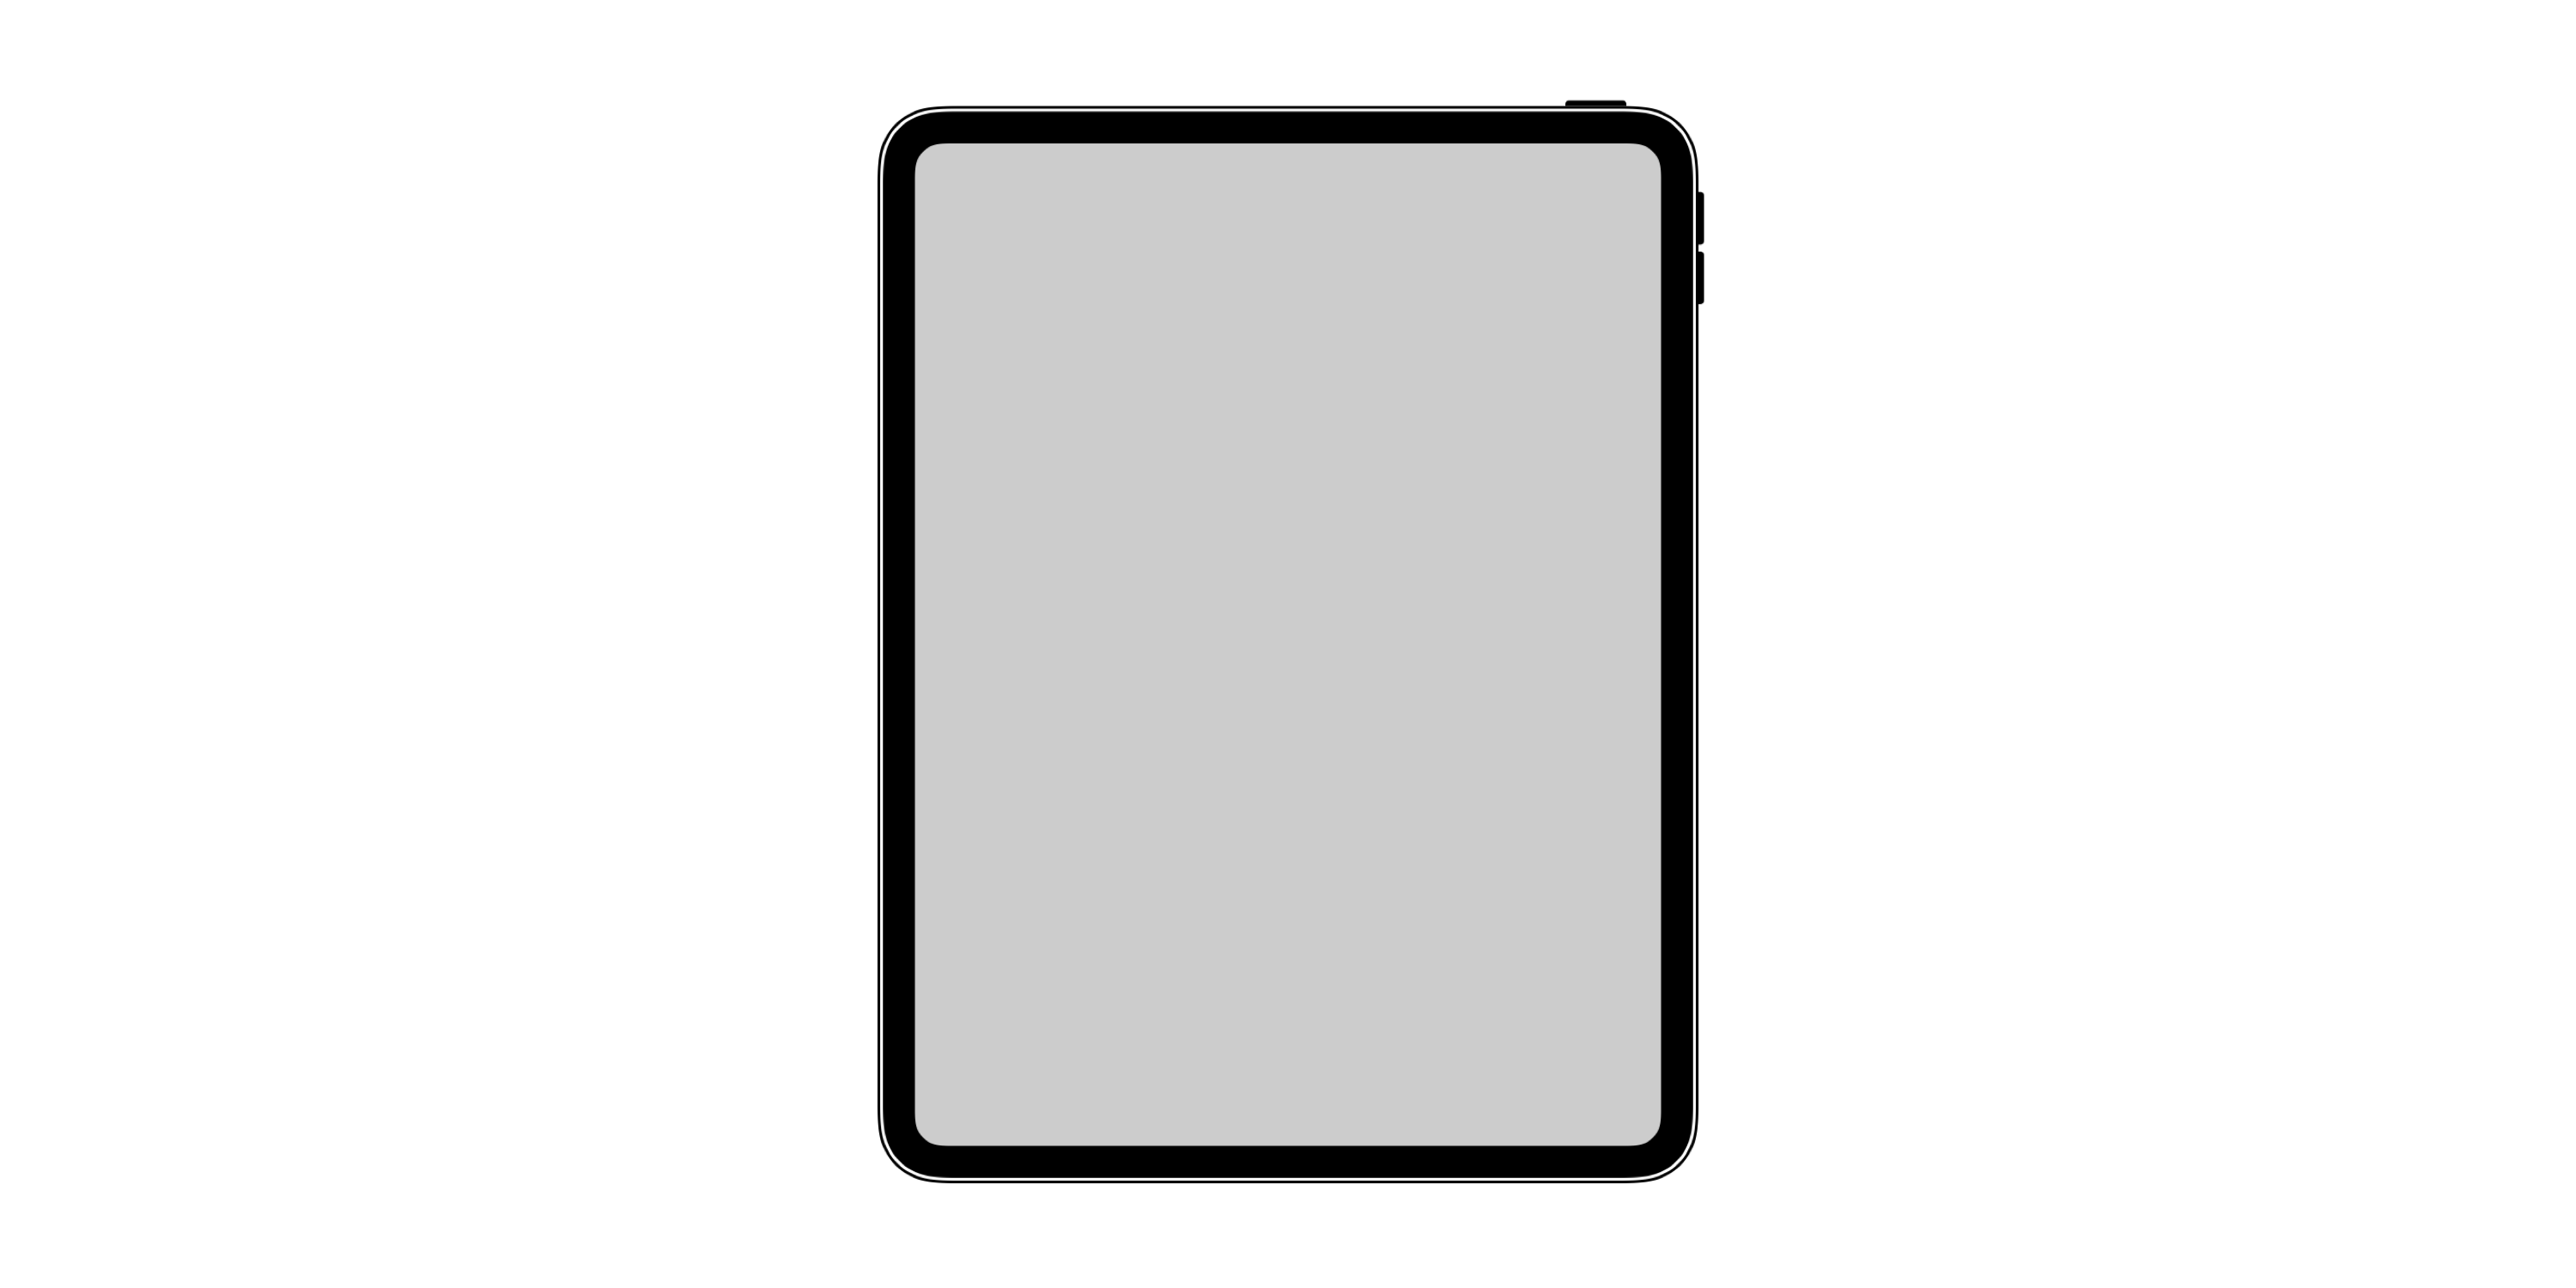 In iOS 12 found a picture of a new iPad Pro